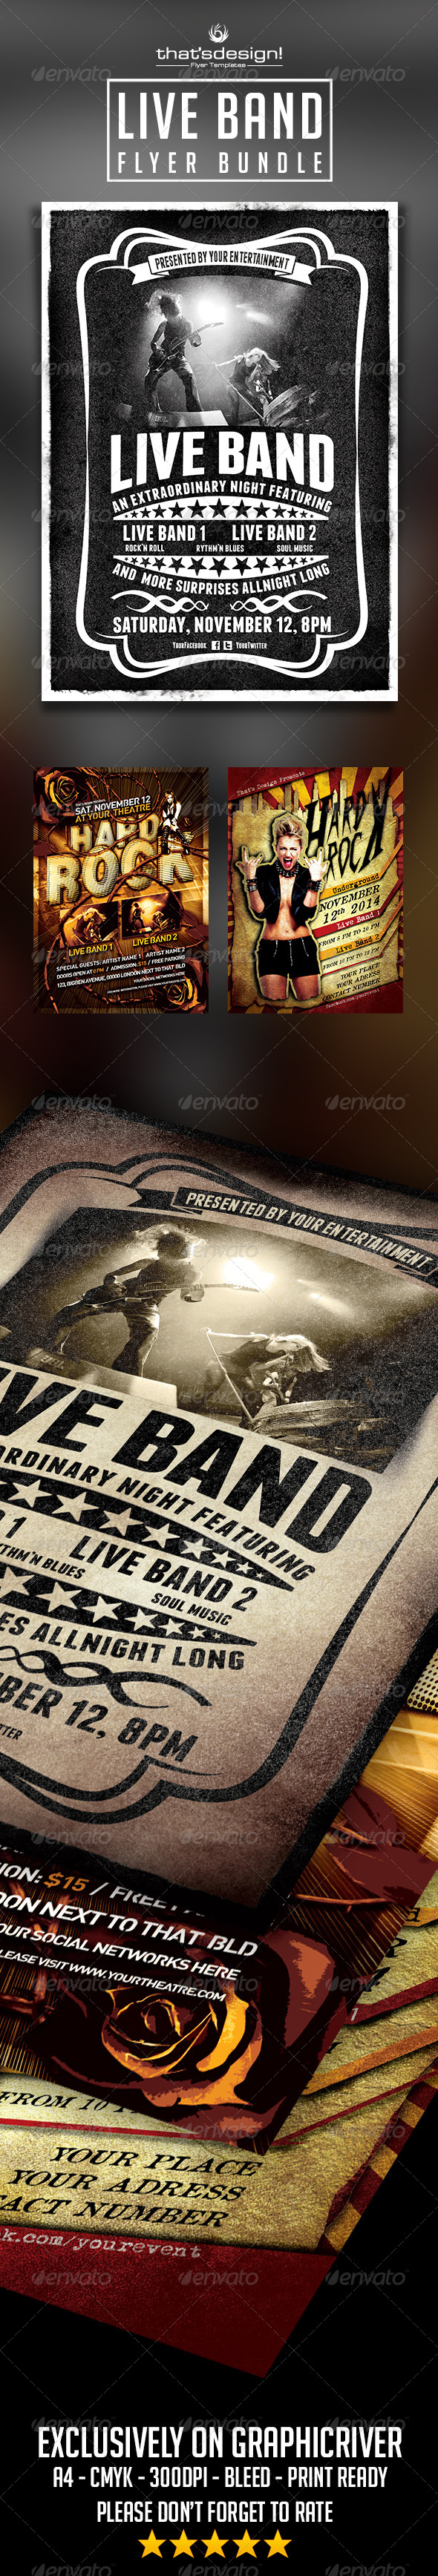 Live Band Flyer Bundle - Concerts Events